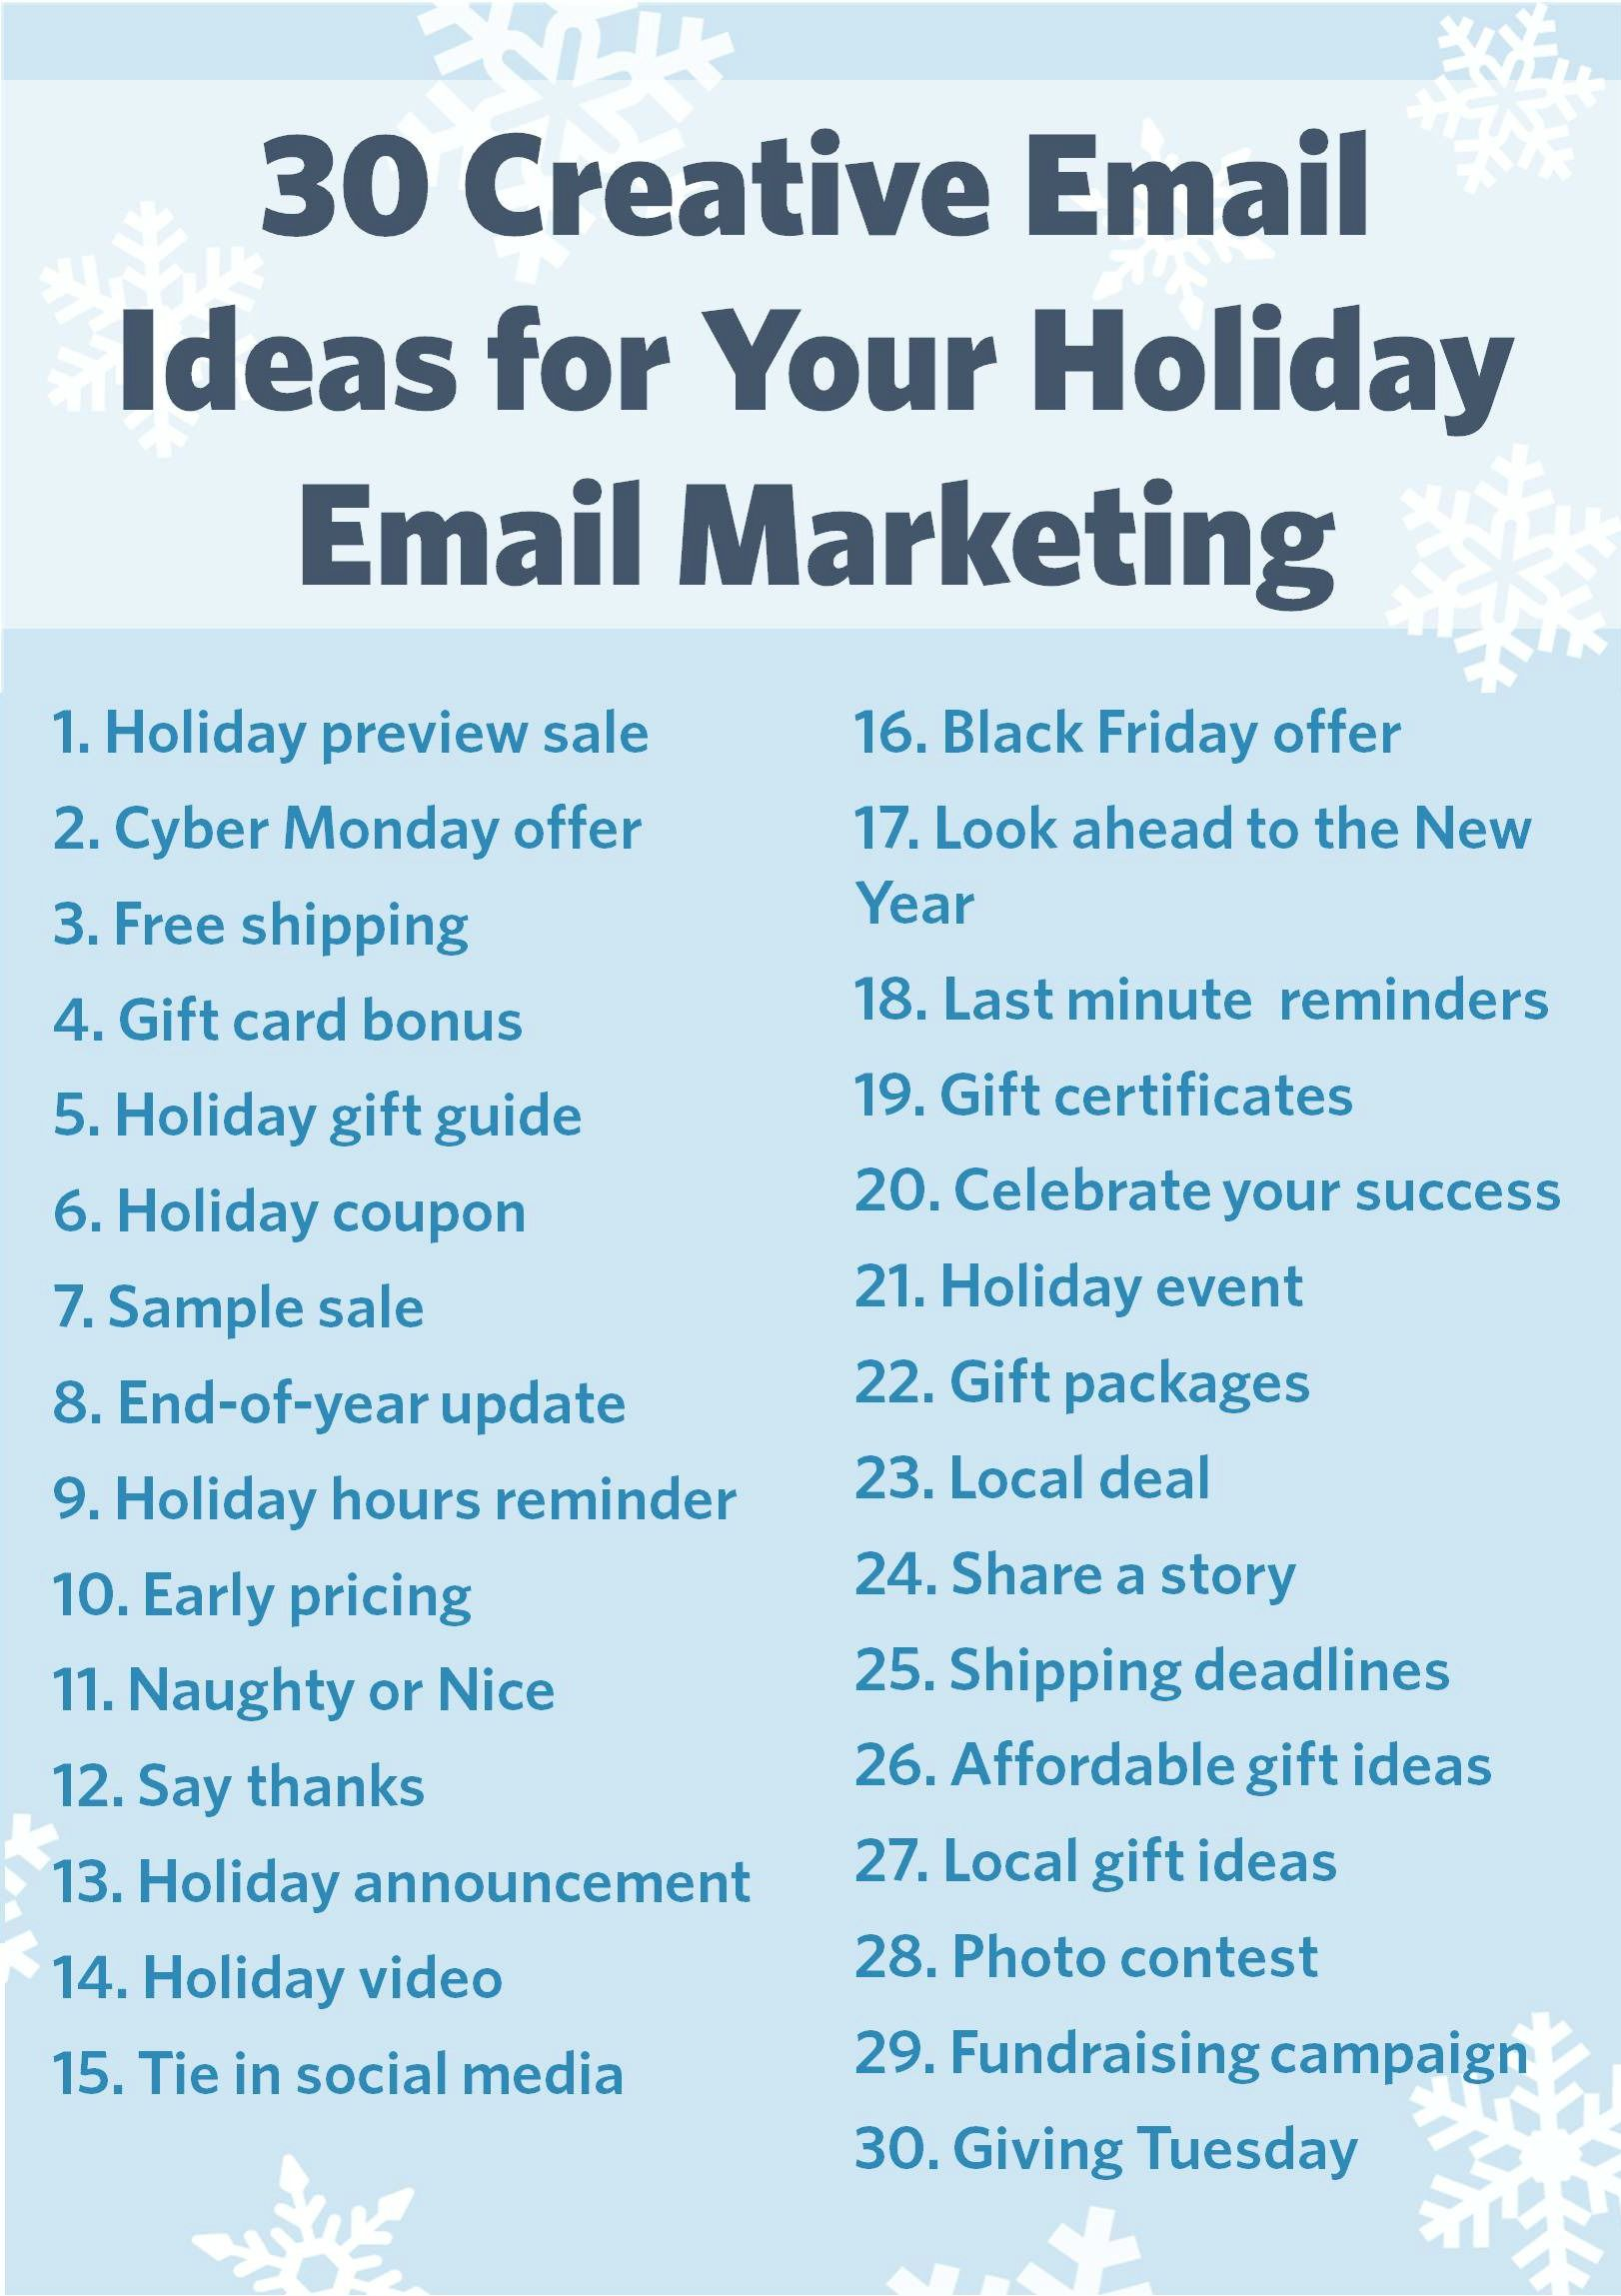 30 creative ideas for your holiday email marketing | marketing